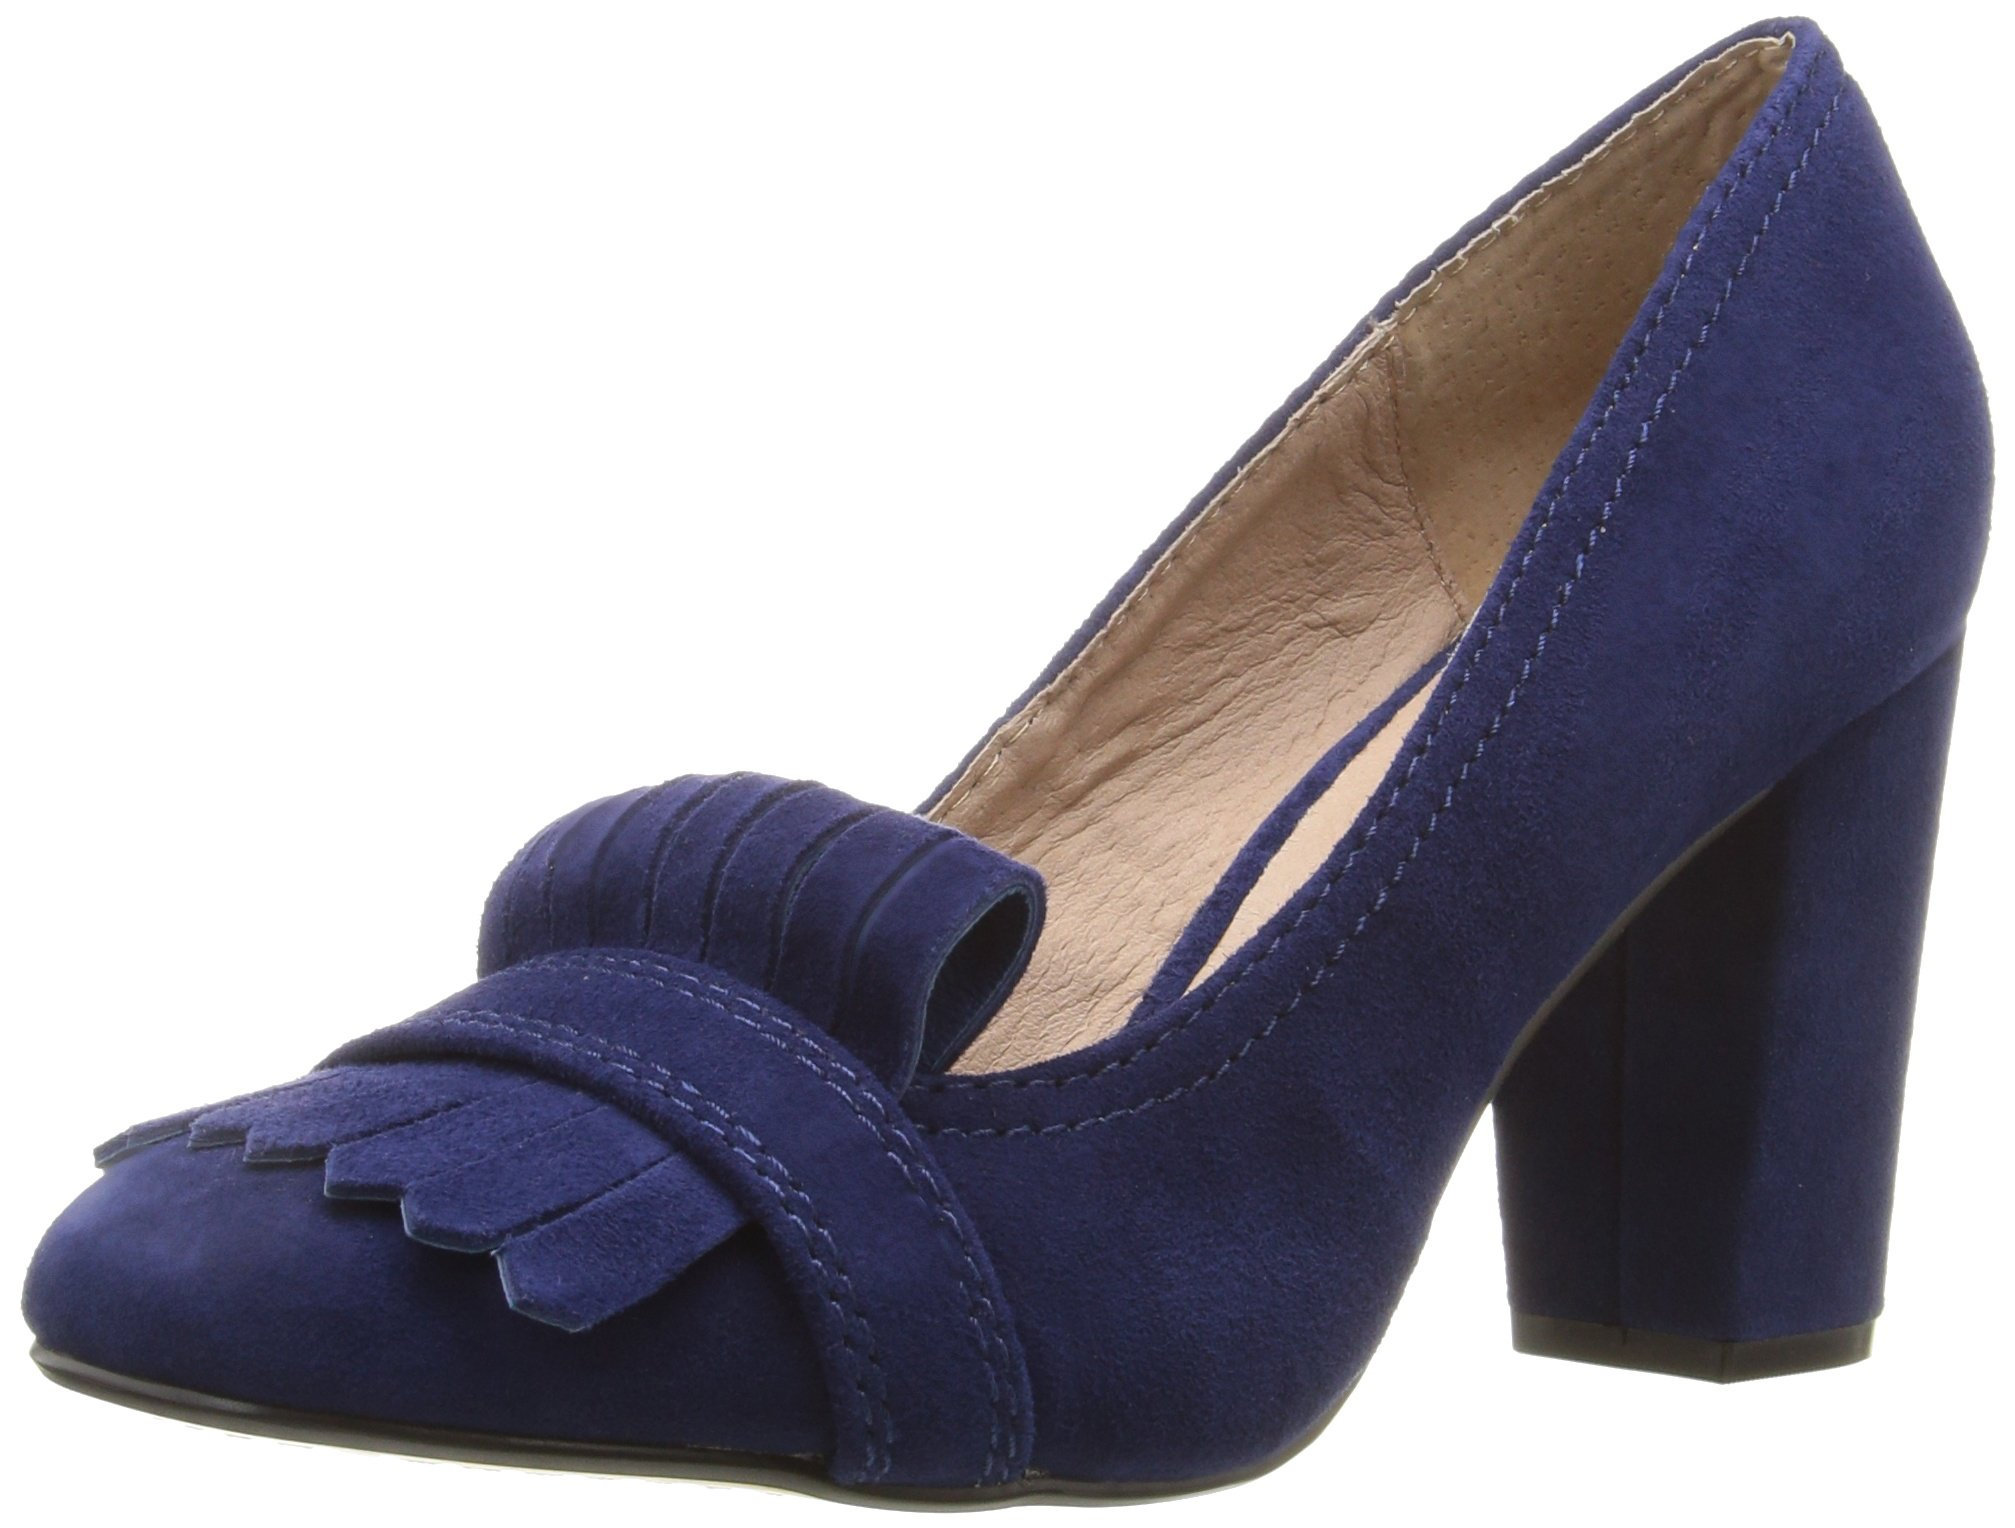 STEVEN by Steve Madden Women's Jade Dress Pump, Blue Suede, 8.5 M US by STEVEN by Steve Madden